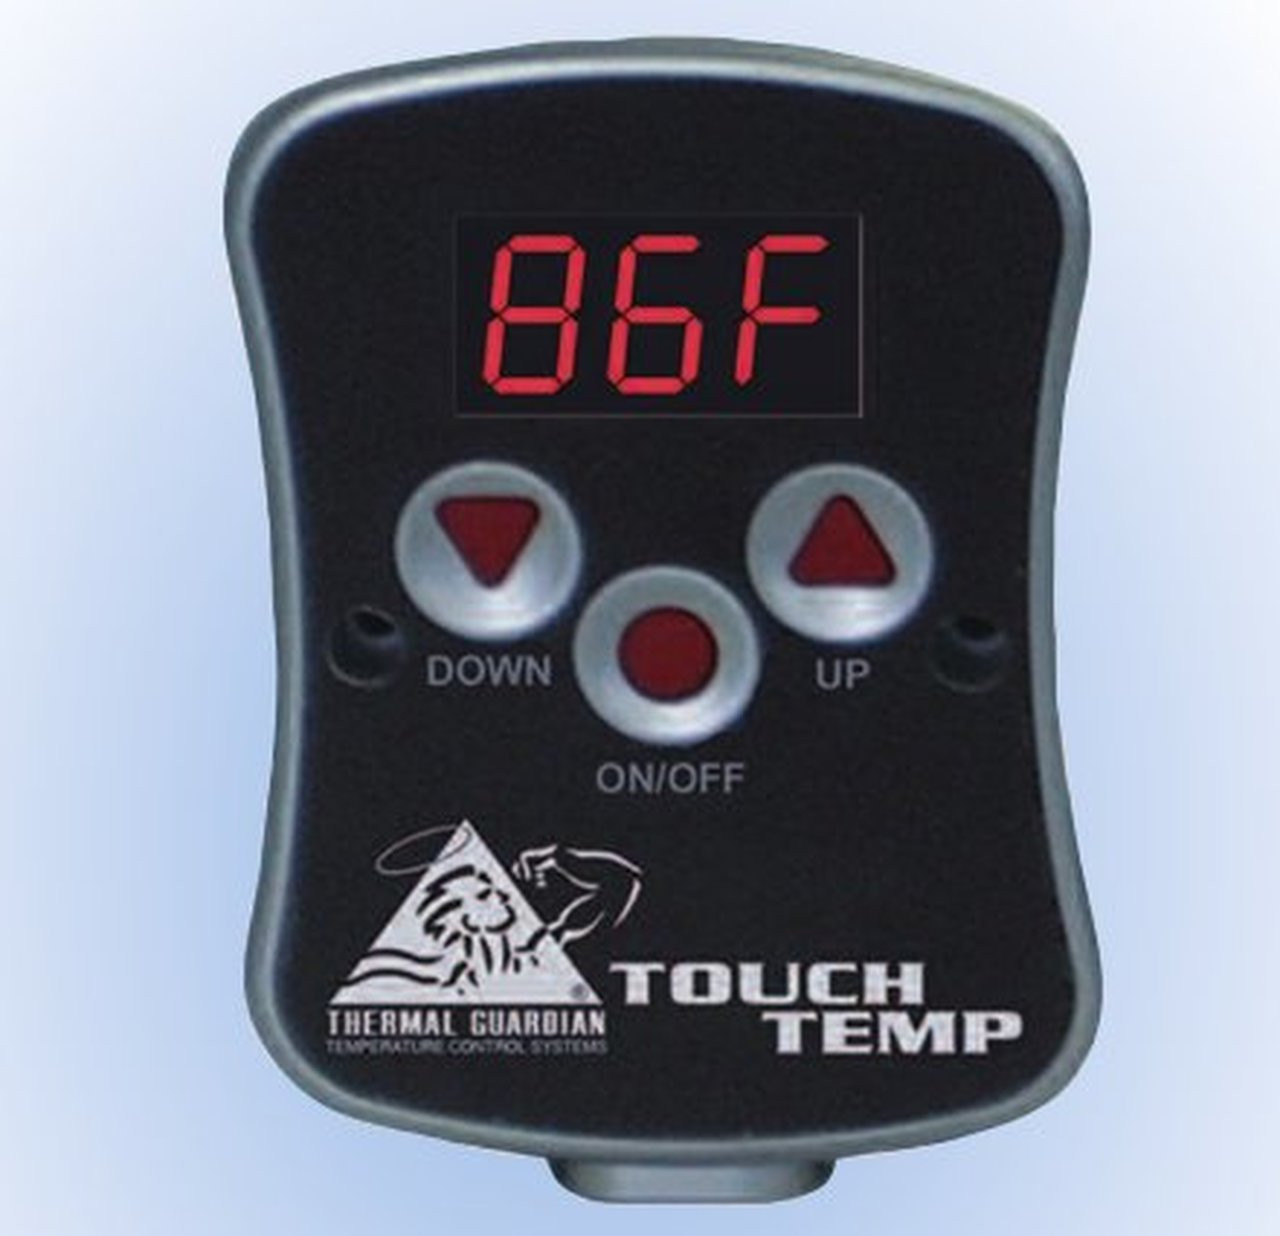 Hardside Waterbed Thermal Guardian Touch Temp Heater